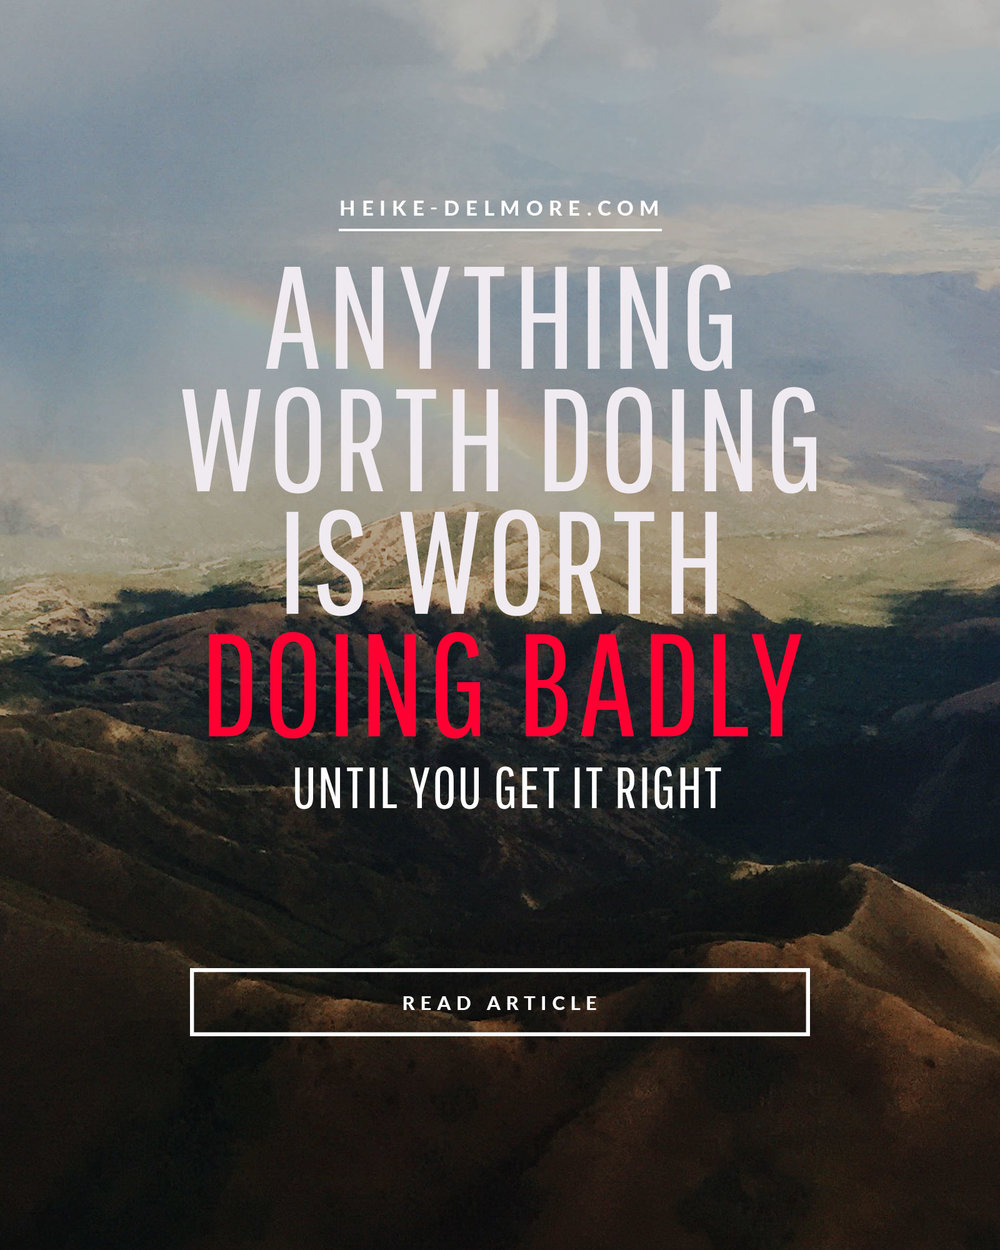 Anything worth doing is worth doing badly until you get it right Heike Delmore